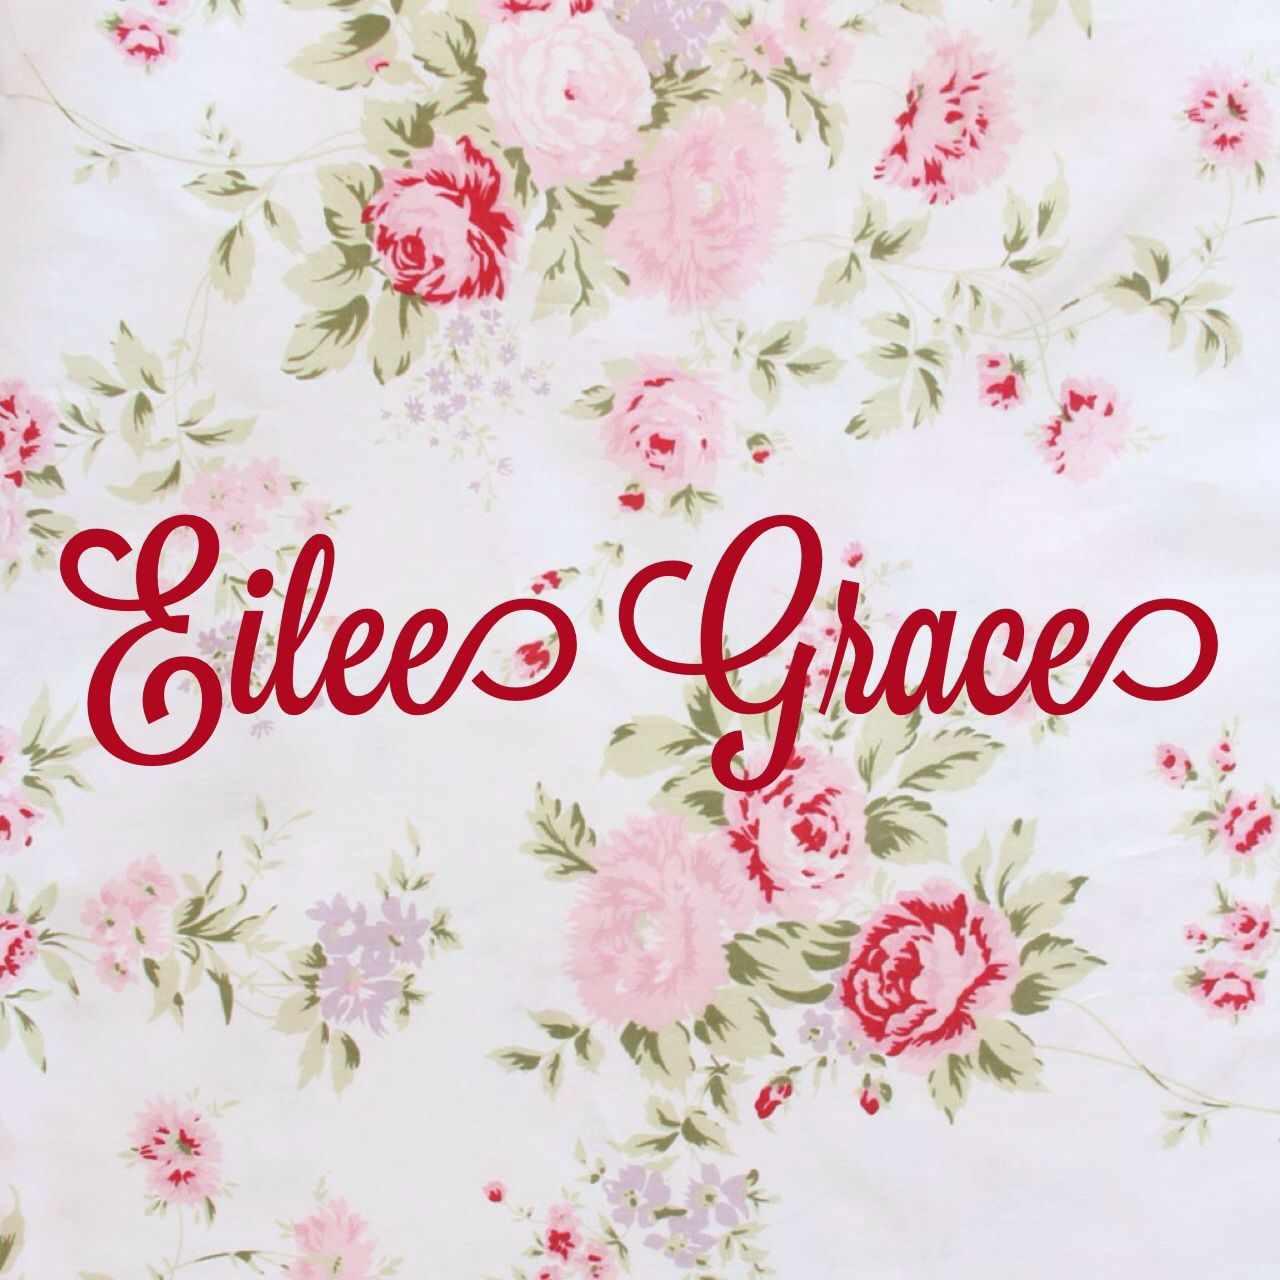 My Grandmas Middle Name Is Eileen So Eilee Is After Her Such A